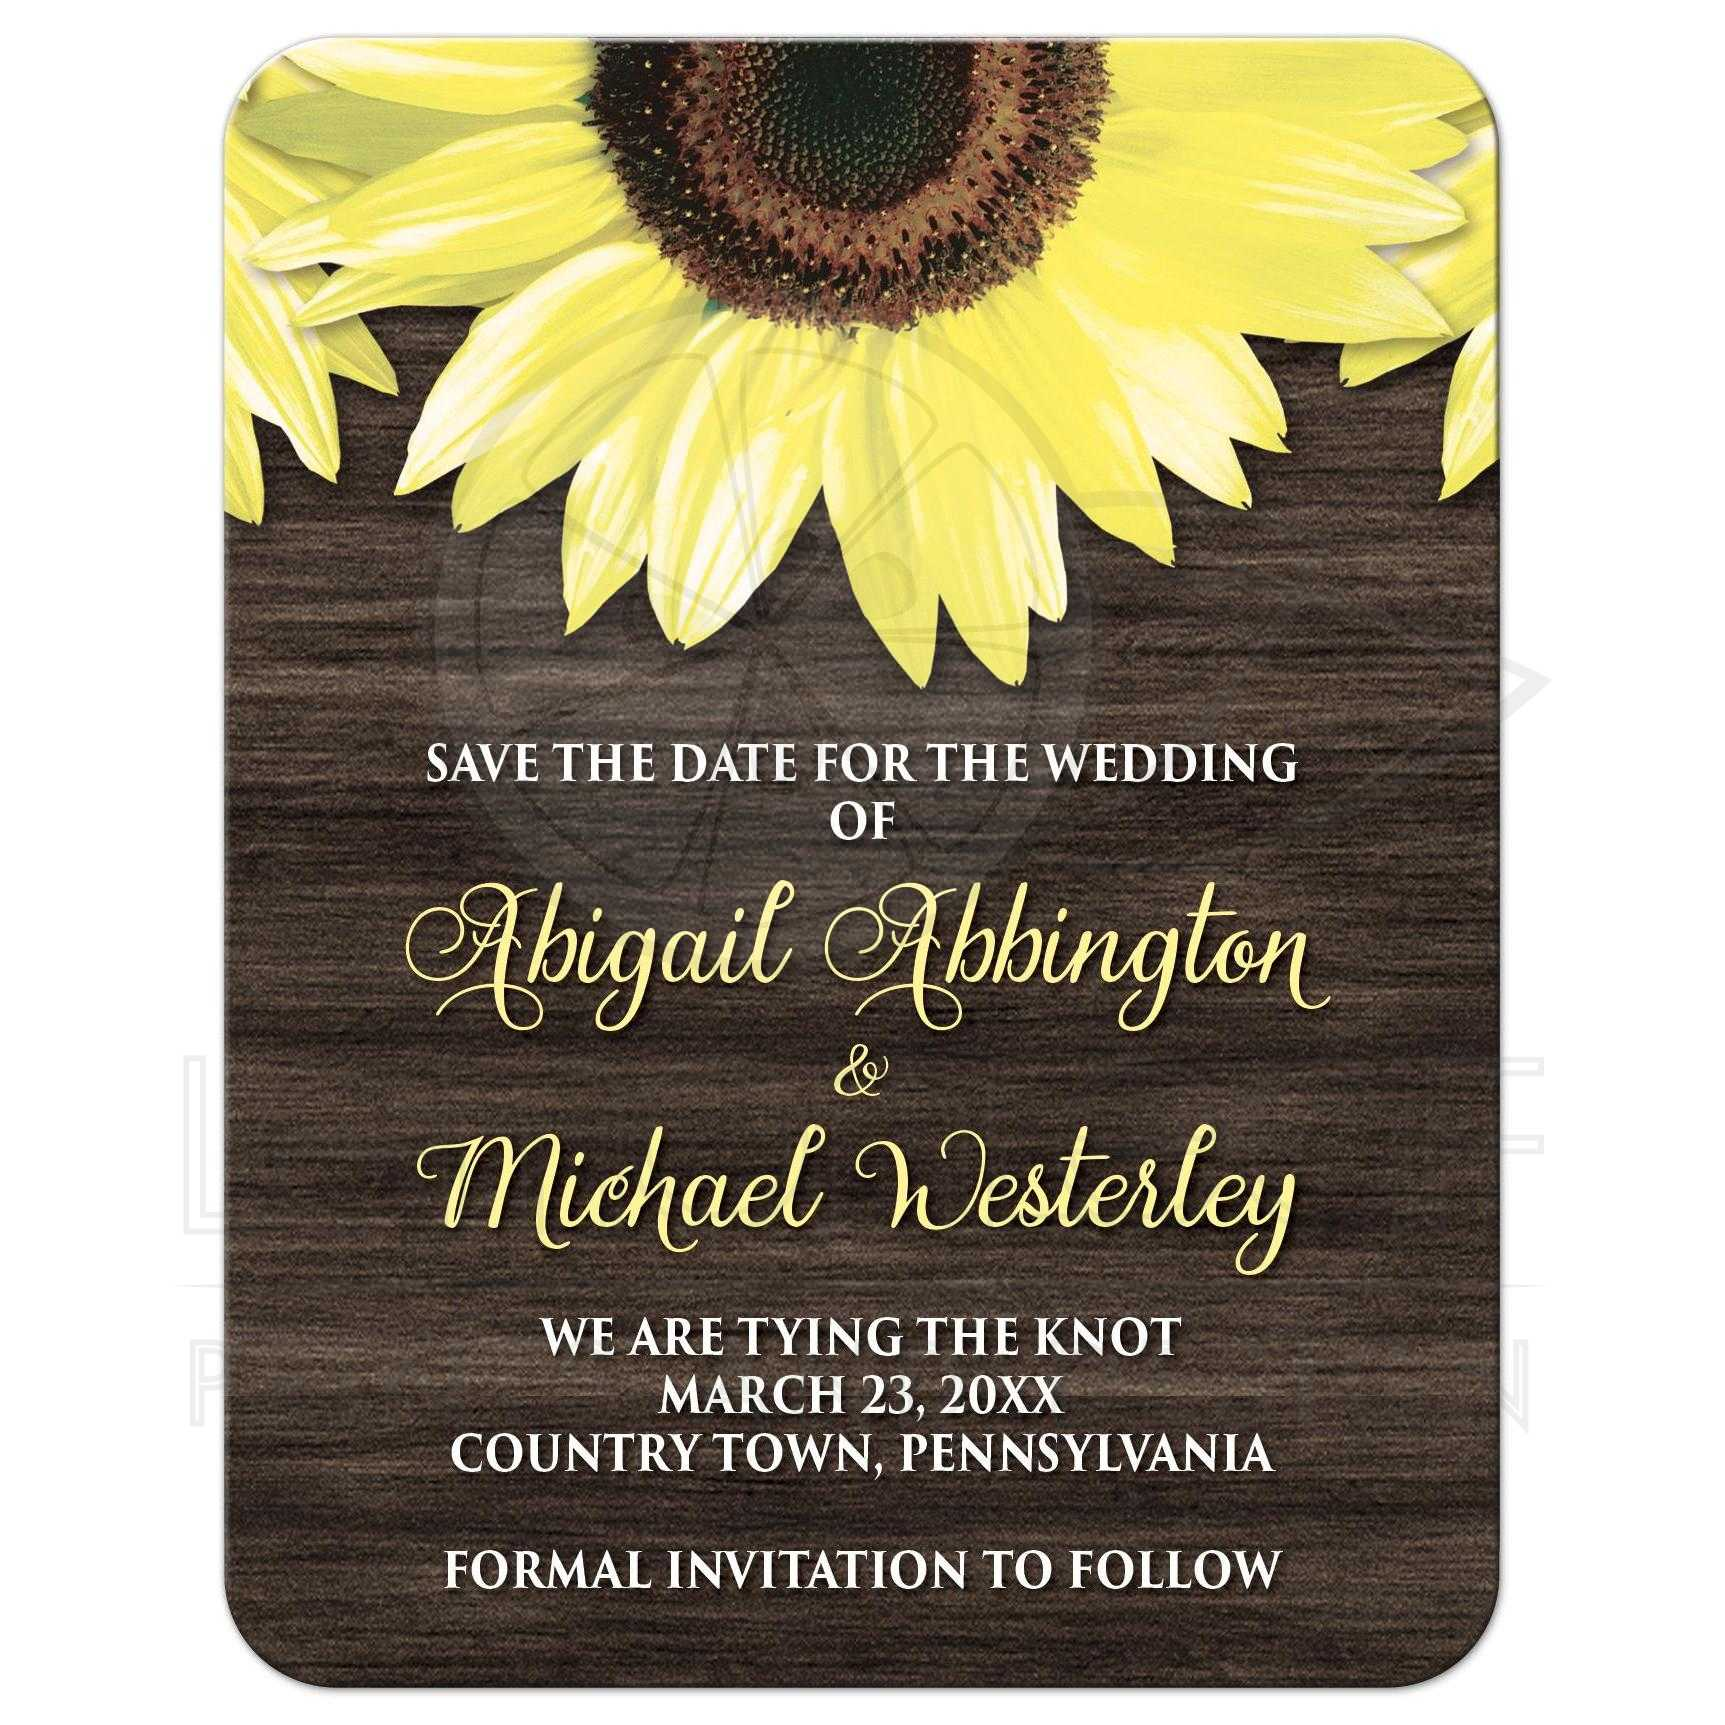 sunflower dating Free sunflower page borders for word - google search sunflowers dates, backgrounds, decorative frames, flower, dating, wedding decor sunflower.